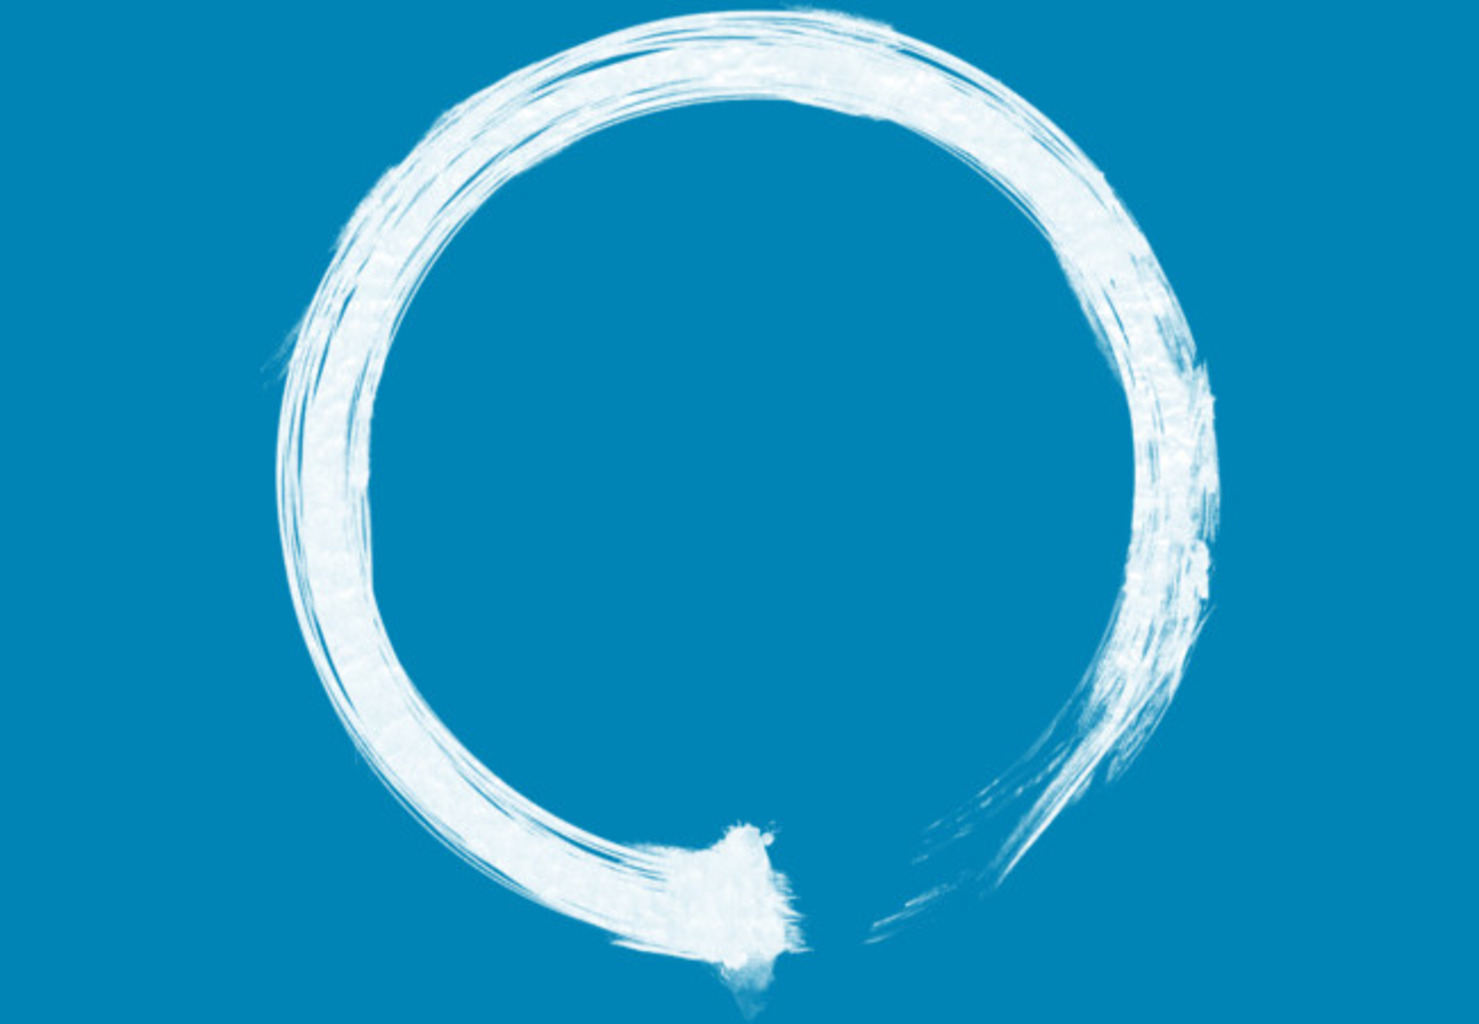 Design by Humans: Zen Enso White